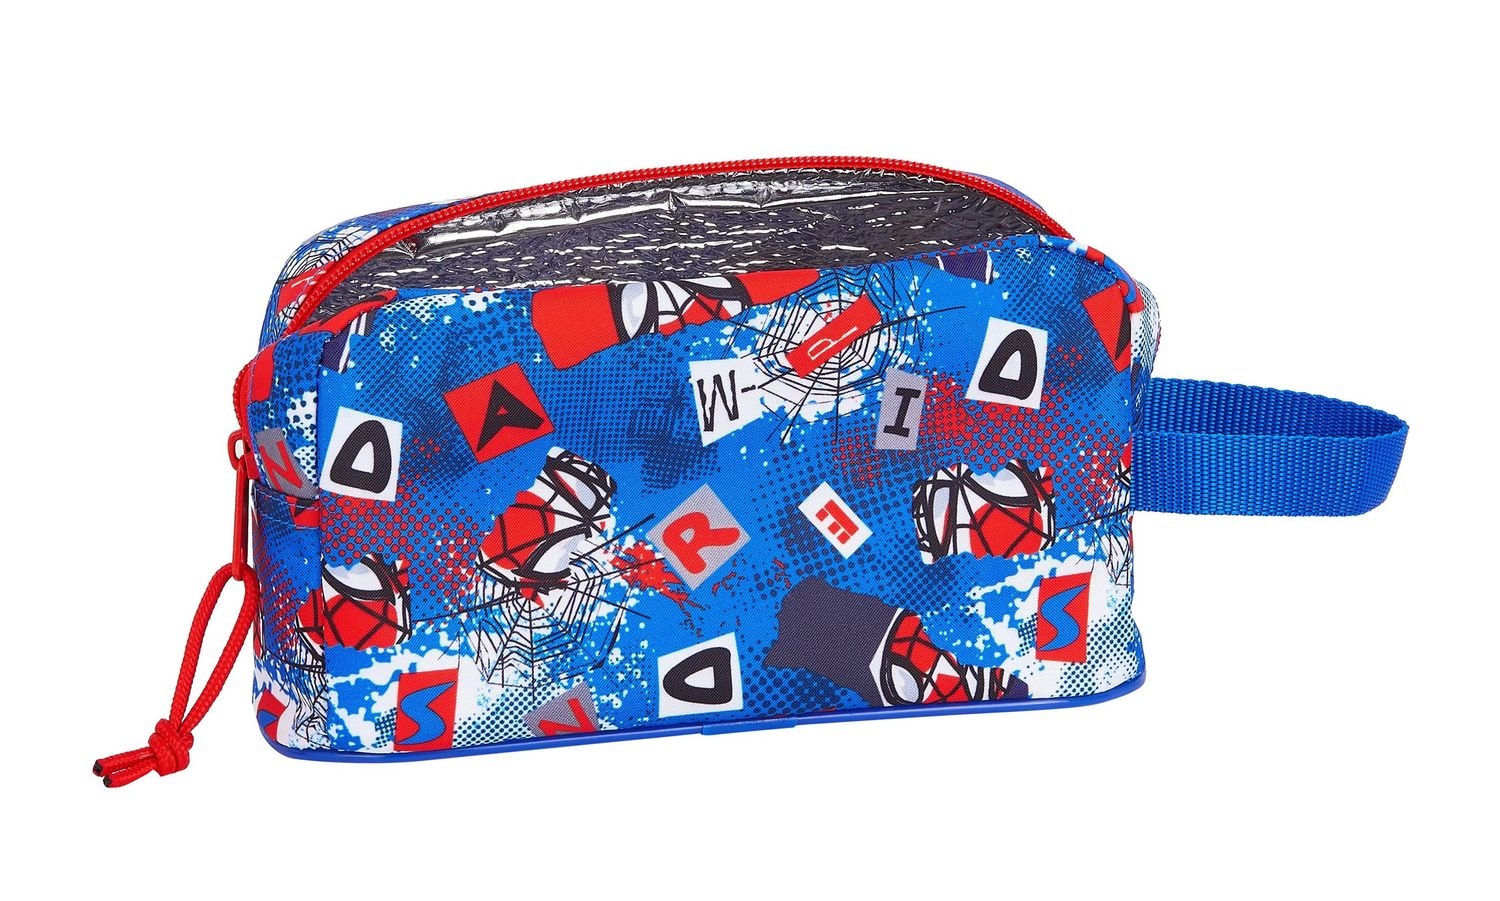 SPIDERMAN PERSPECTIVE Insulated Thermal Lunch Bag – image 2